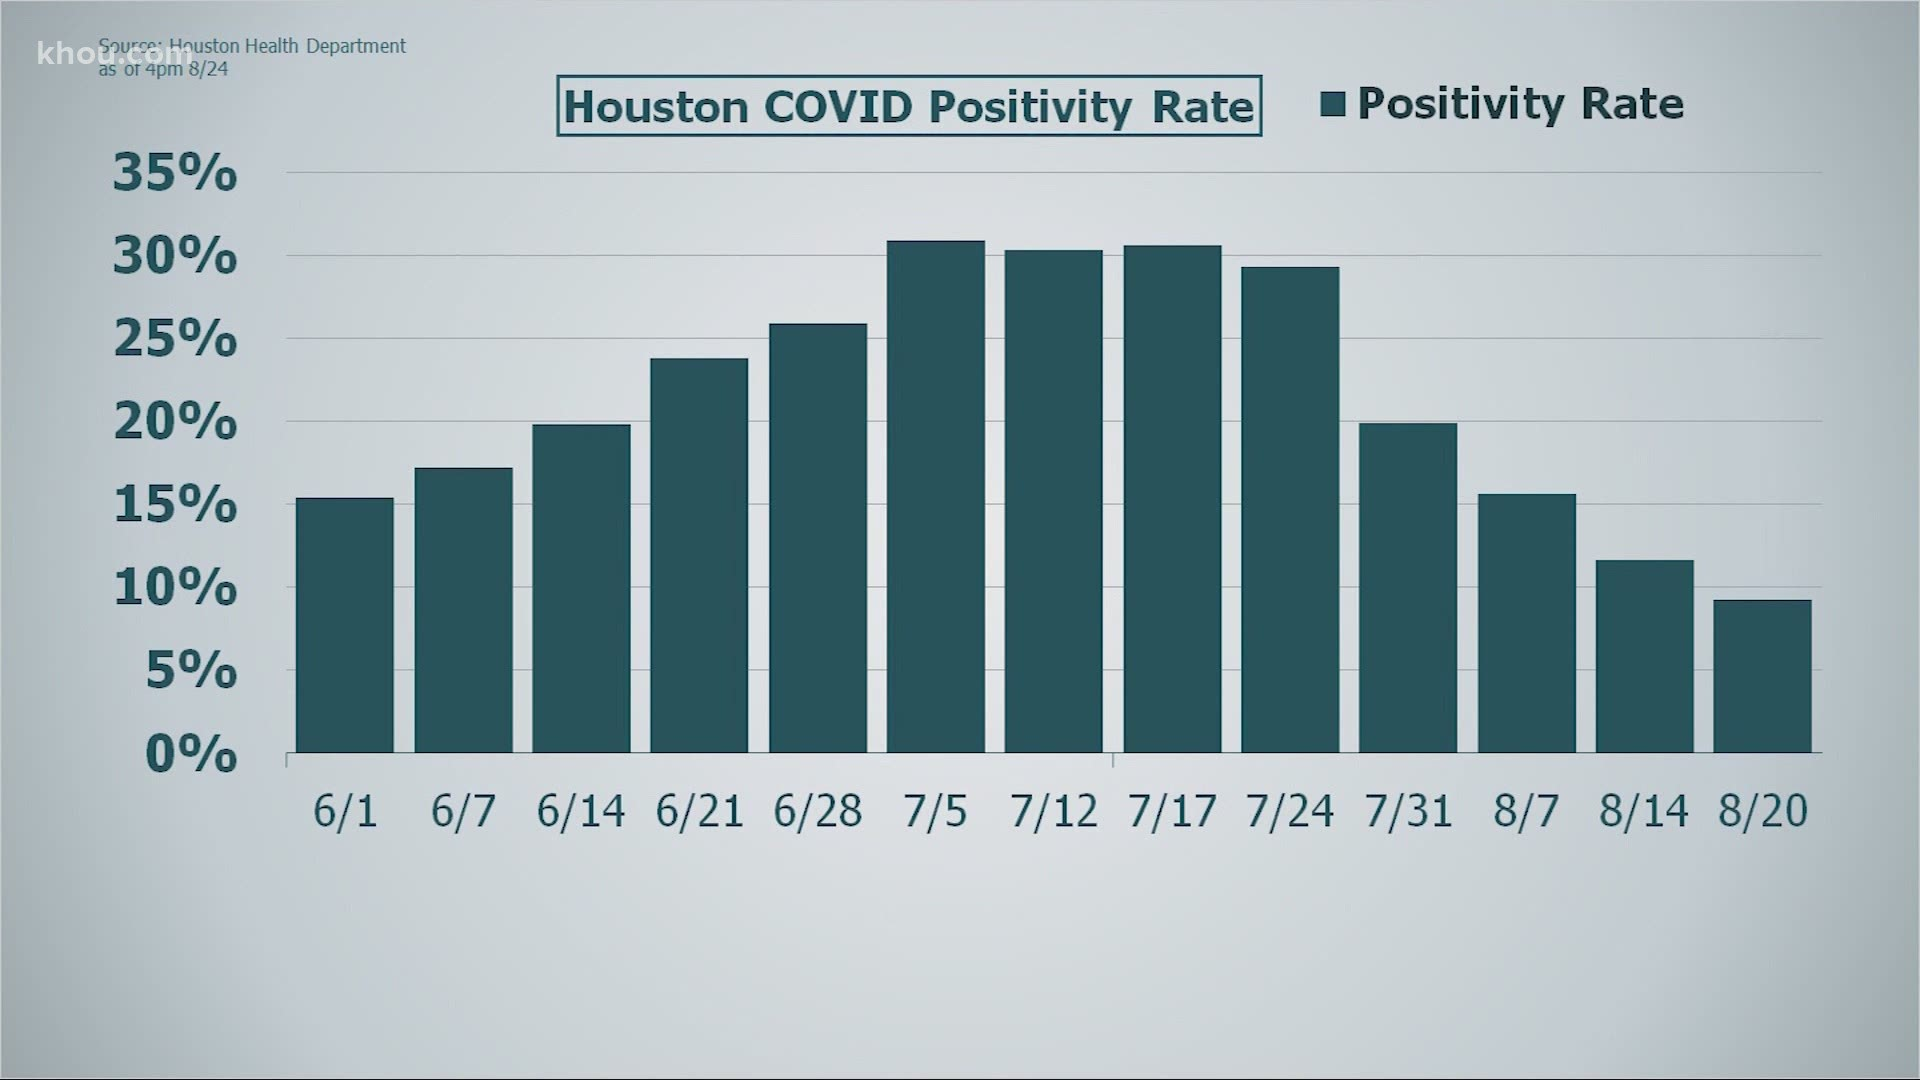 Houston S Covid 19 Update Positivity Rate Lowest Since May Khou Com